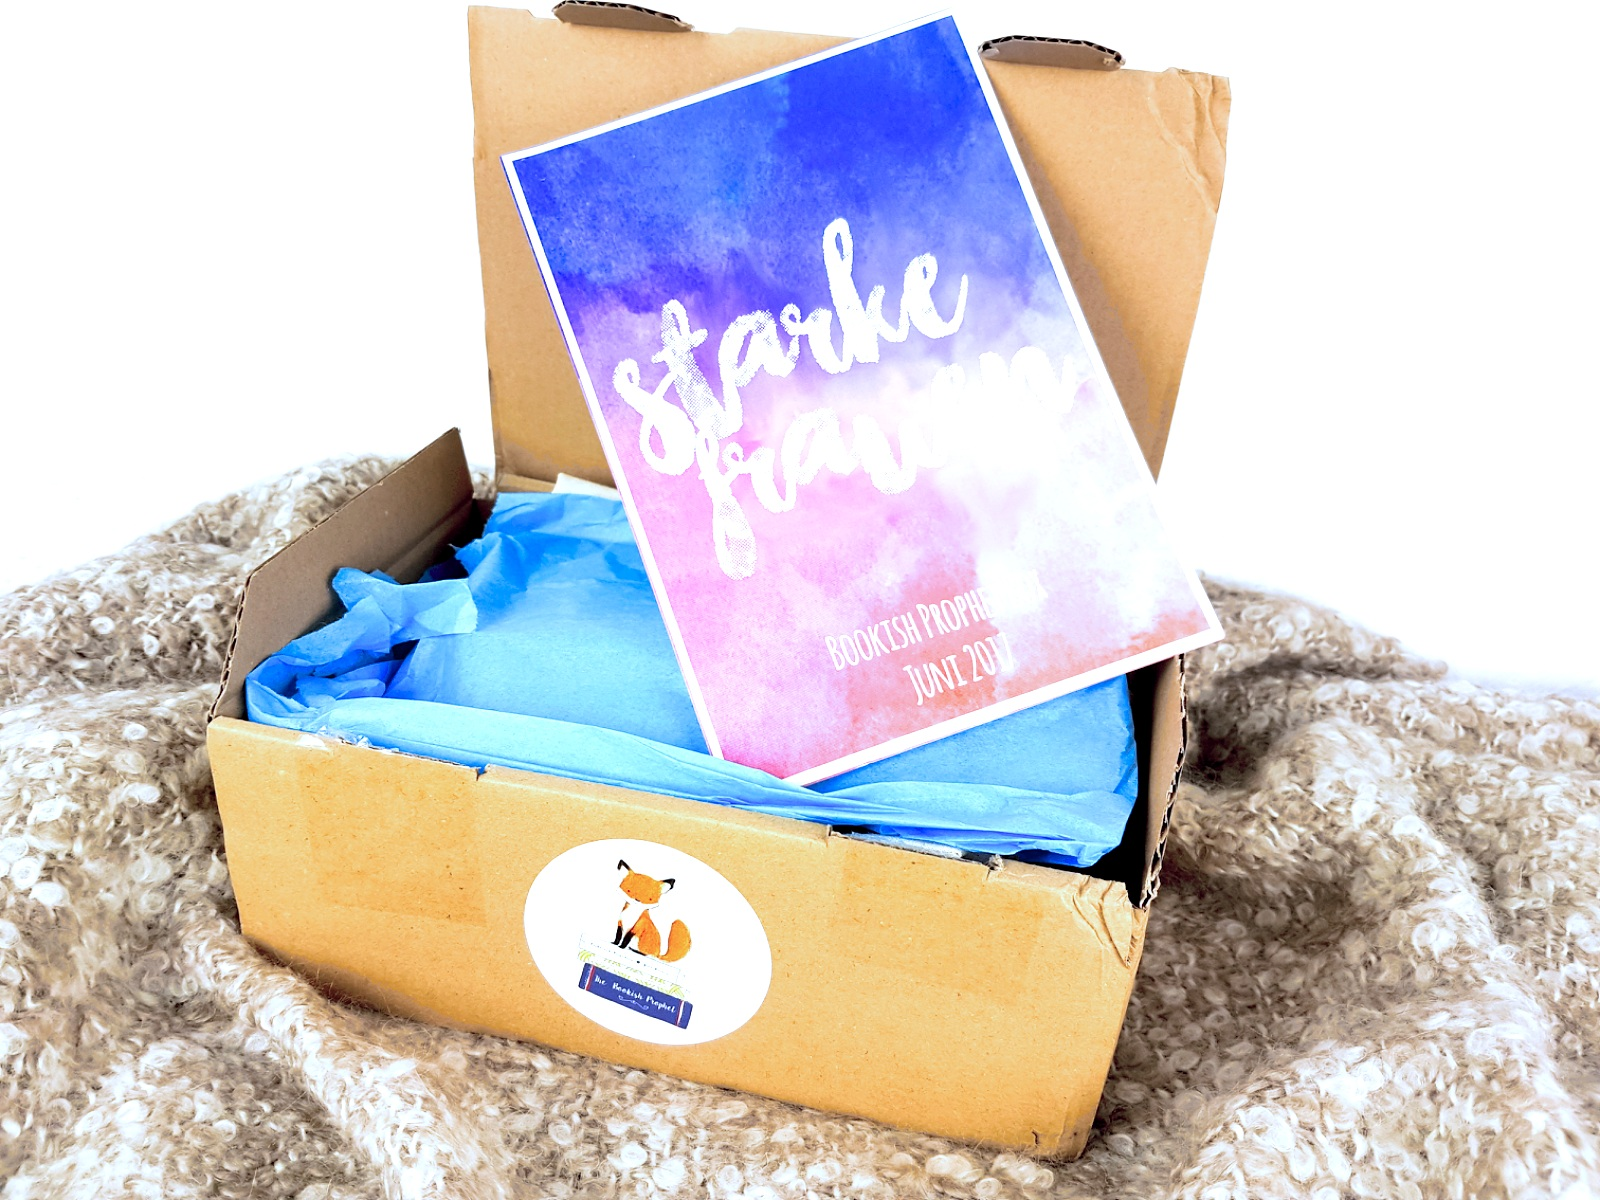 Unpacking: The Bookish Prophet Box – Starke Frauen